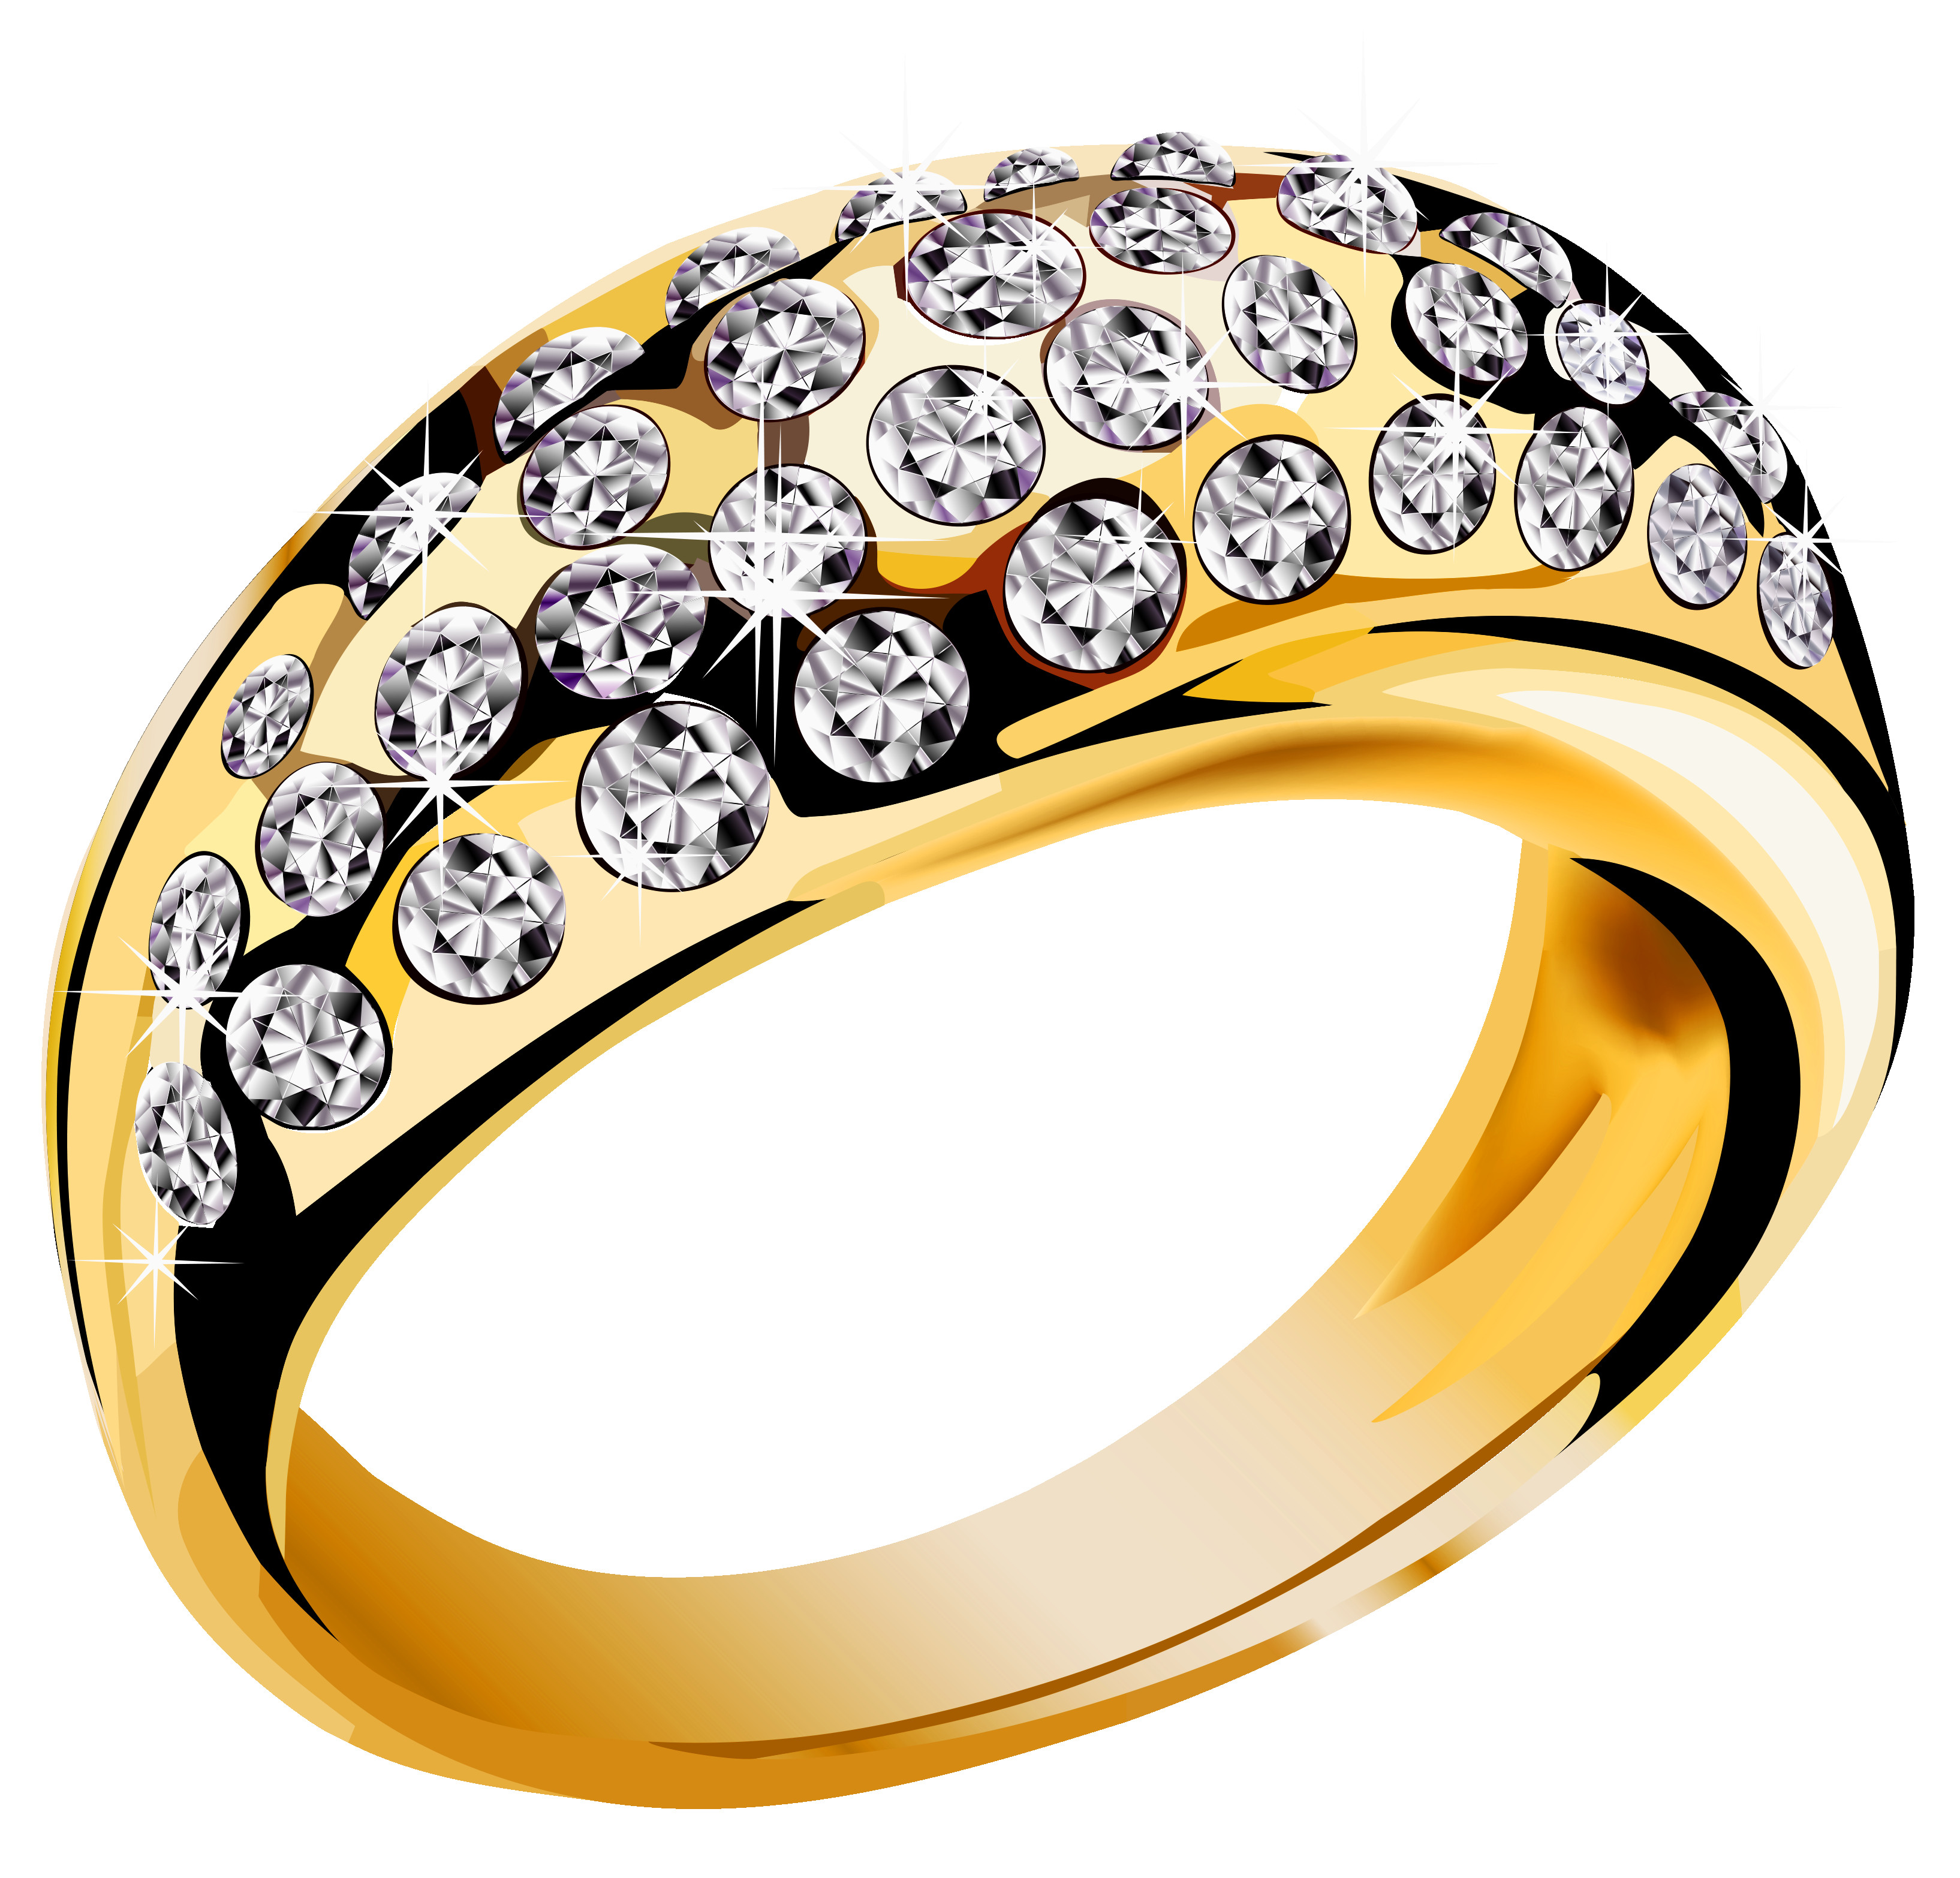 3269x3132 Wedding Rings Gold Png Clip Art Best Web Clipart Endear Ring Png